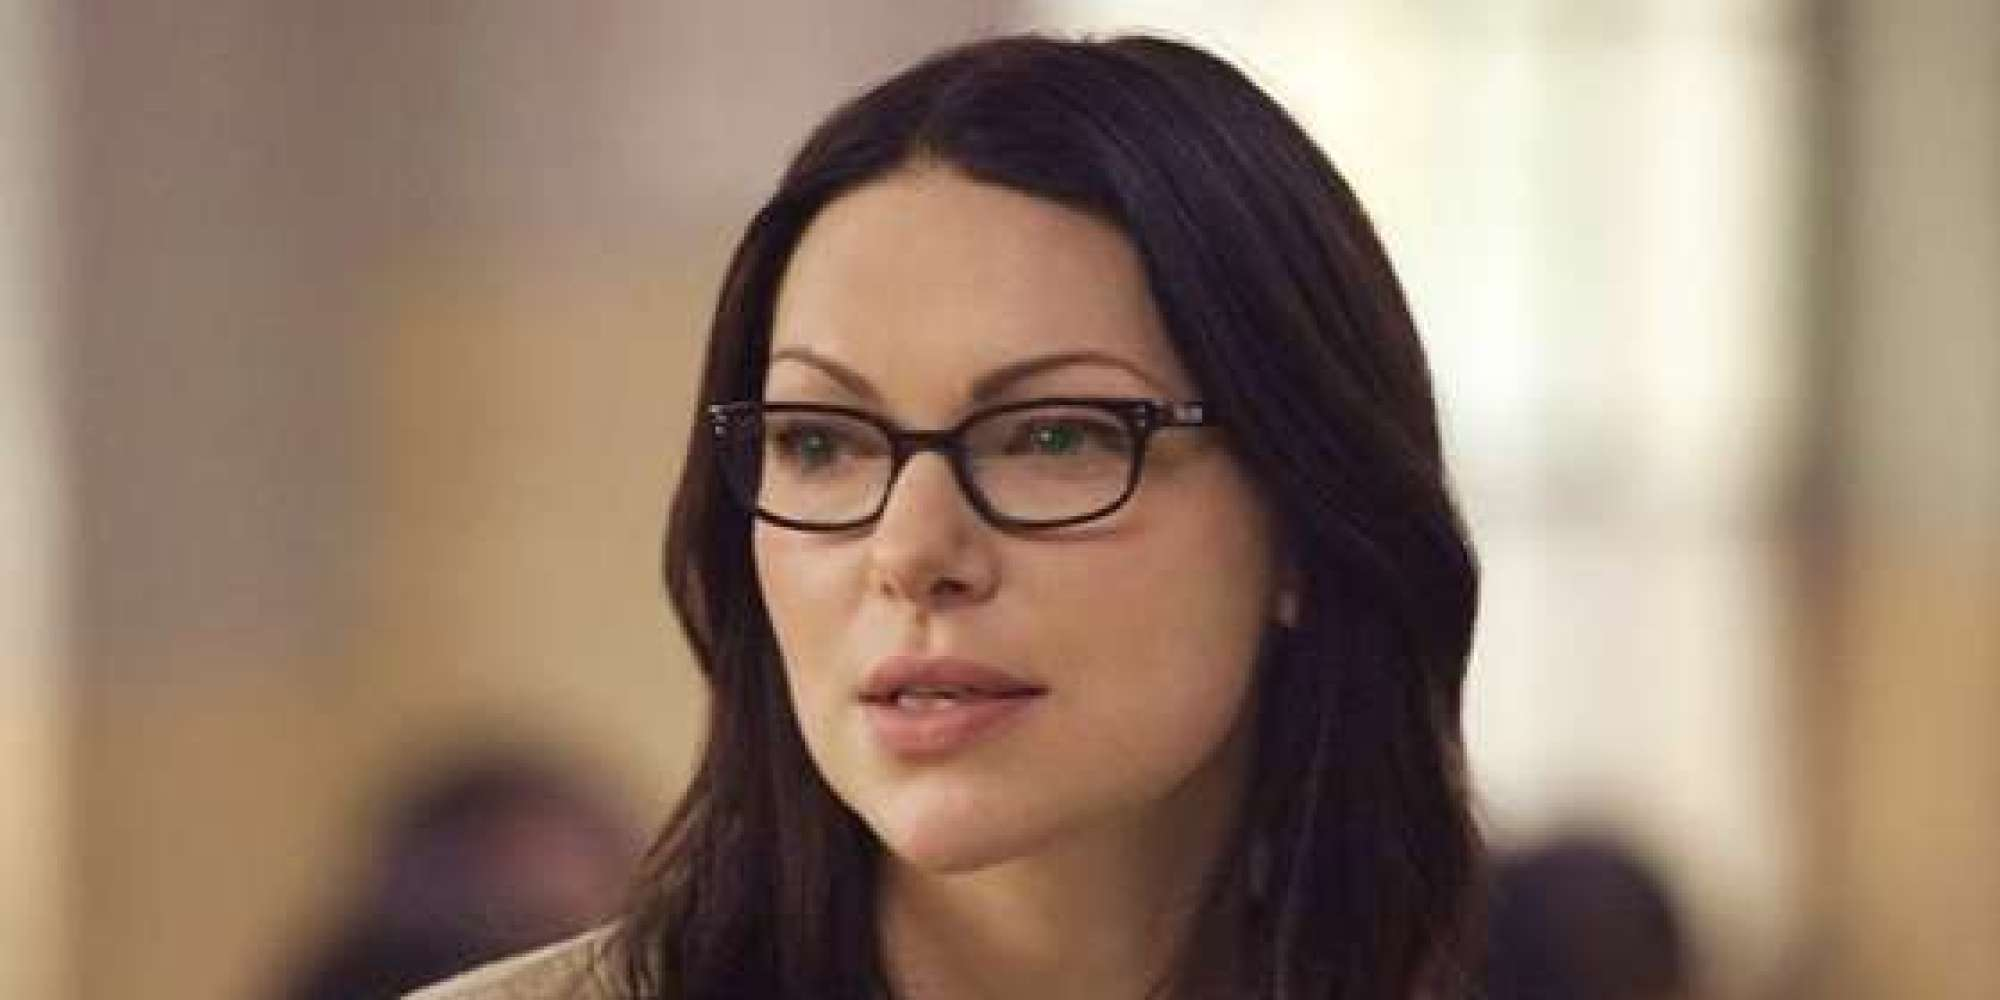 laura prepon wallpapers high resolution and quality download